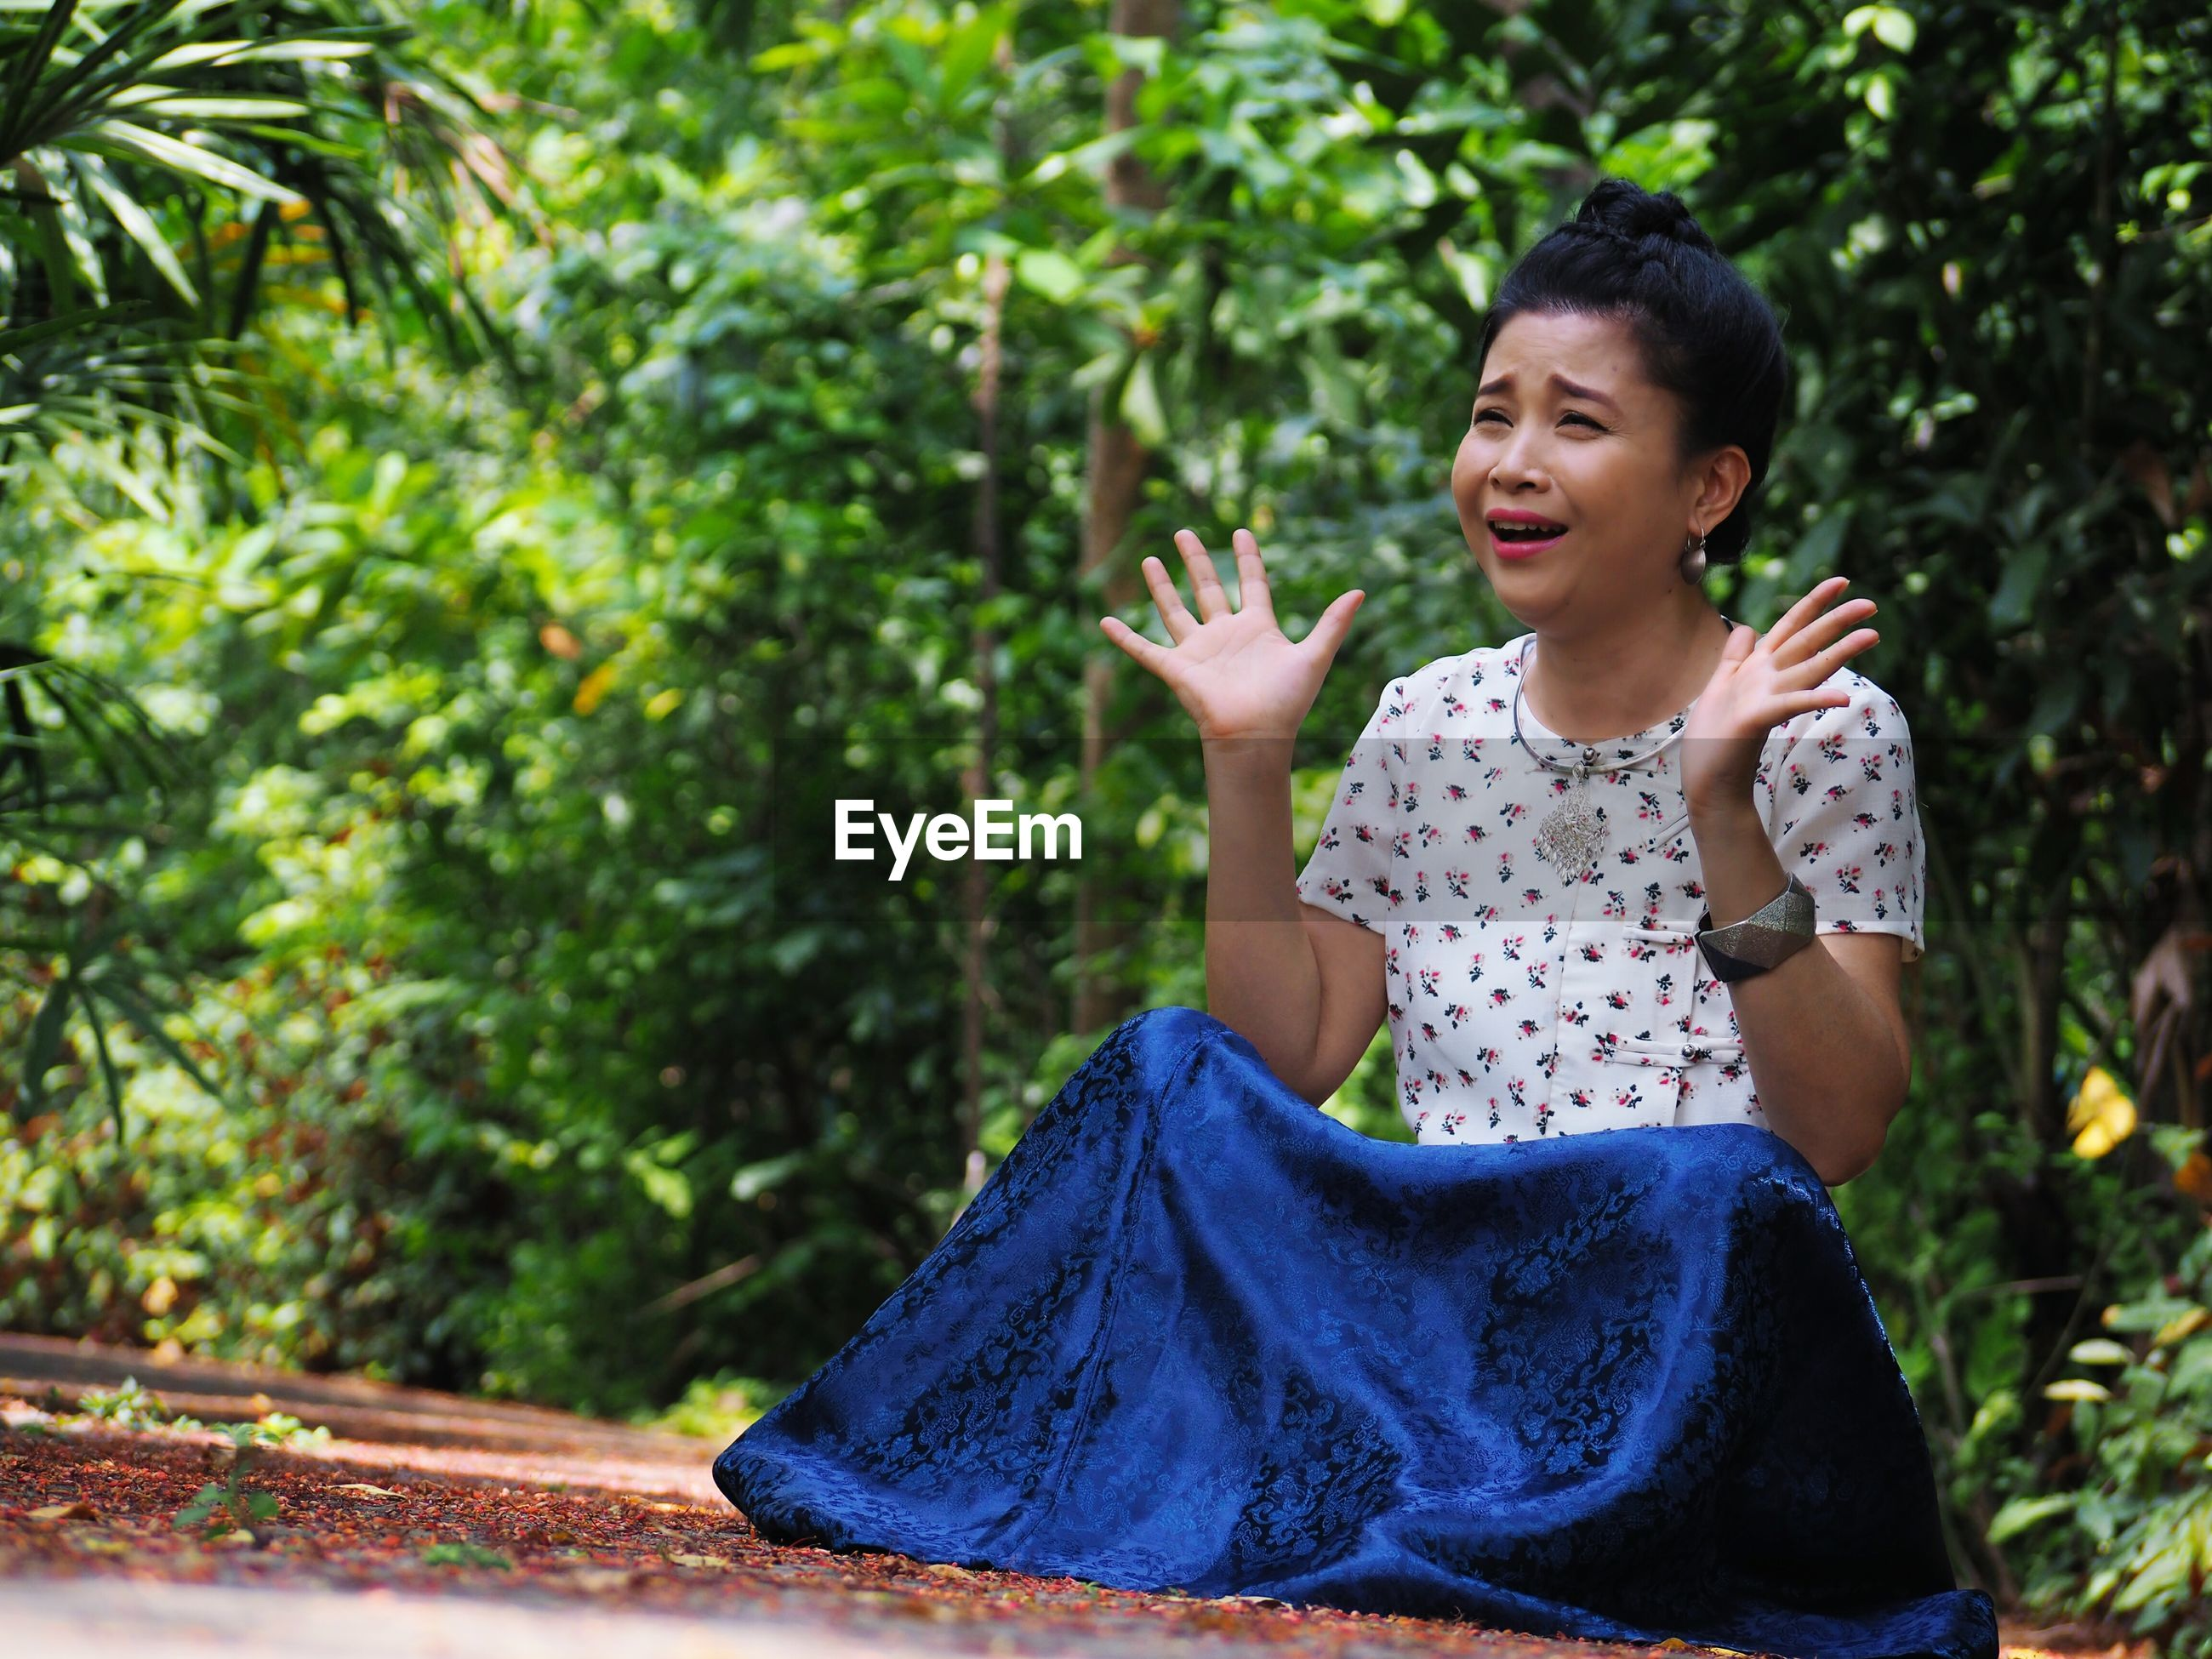 Happy woman gesturing while sitting on field in forest